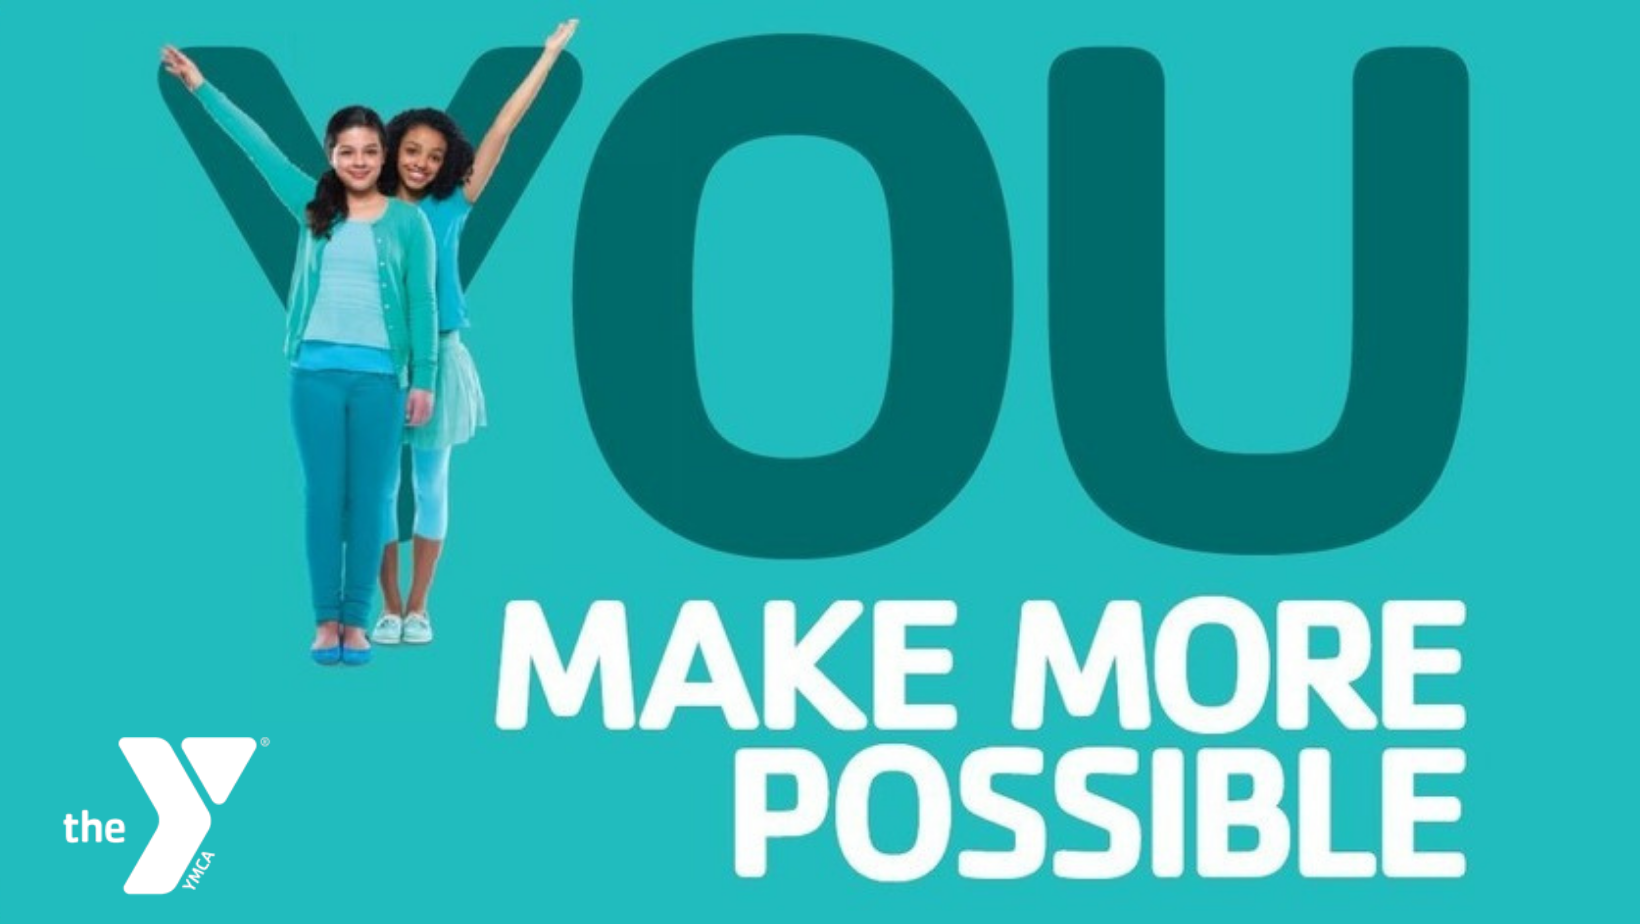 http://mtrymca.org/sites/mtrymca.org/assets/images/give/You-Make-More-Possible.png